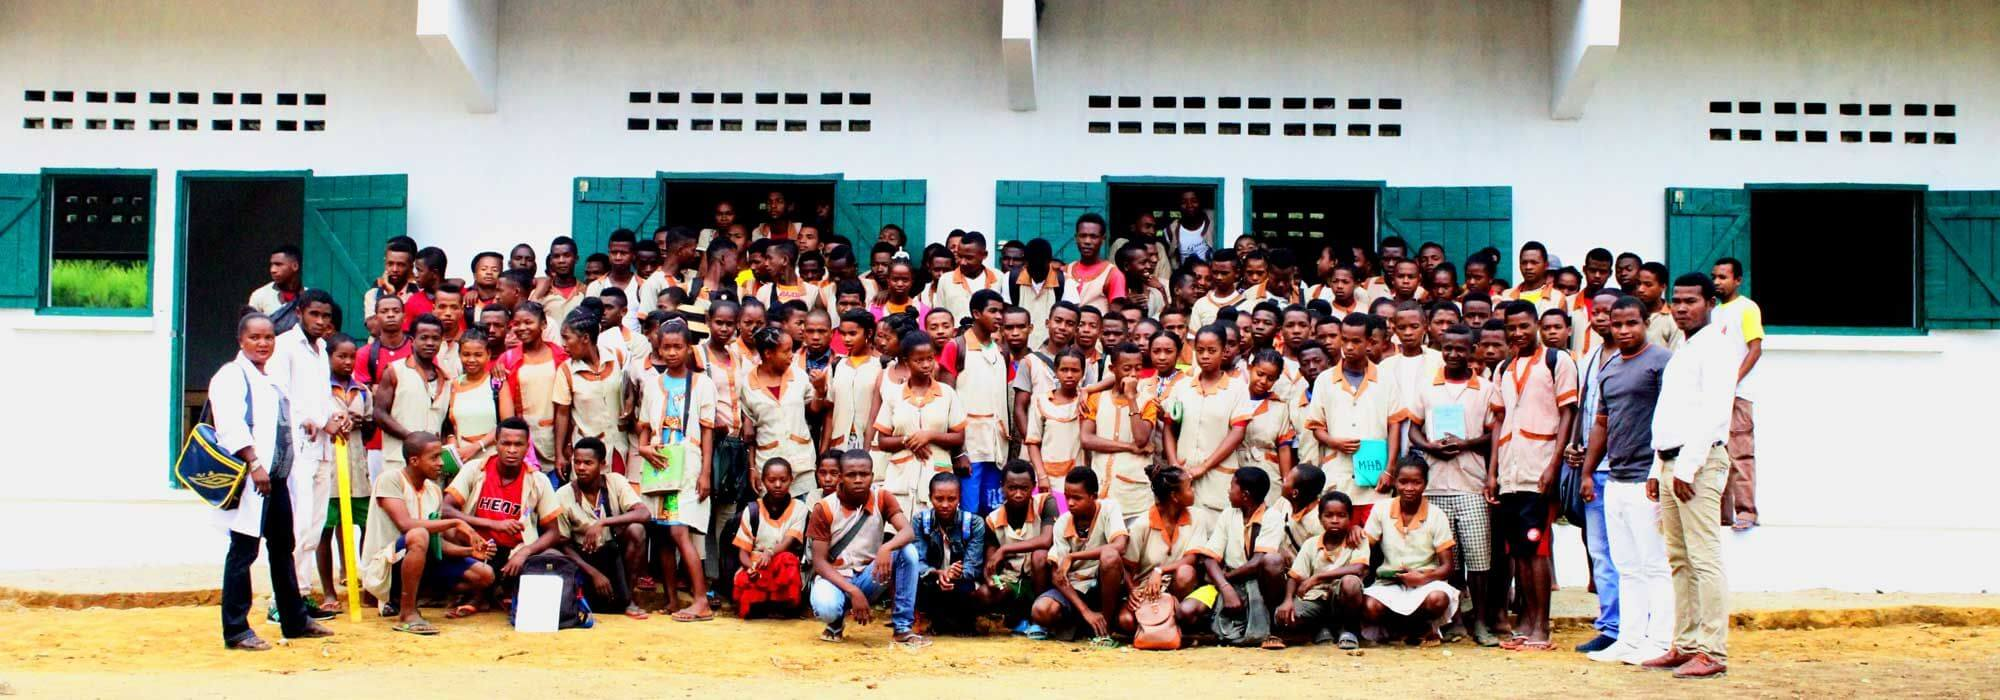 Ranomafana Lycee school finished with kids and teachers outside